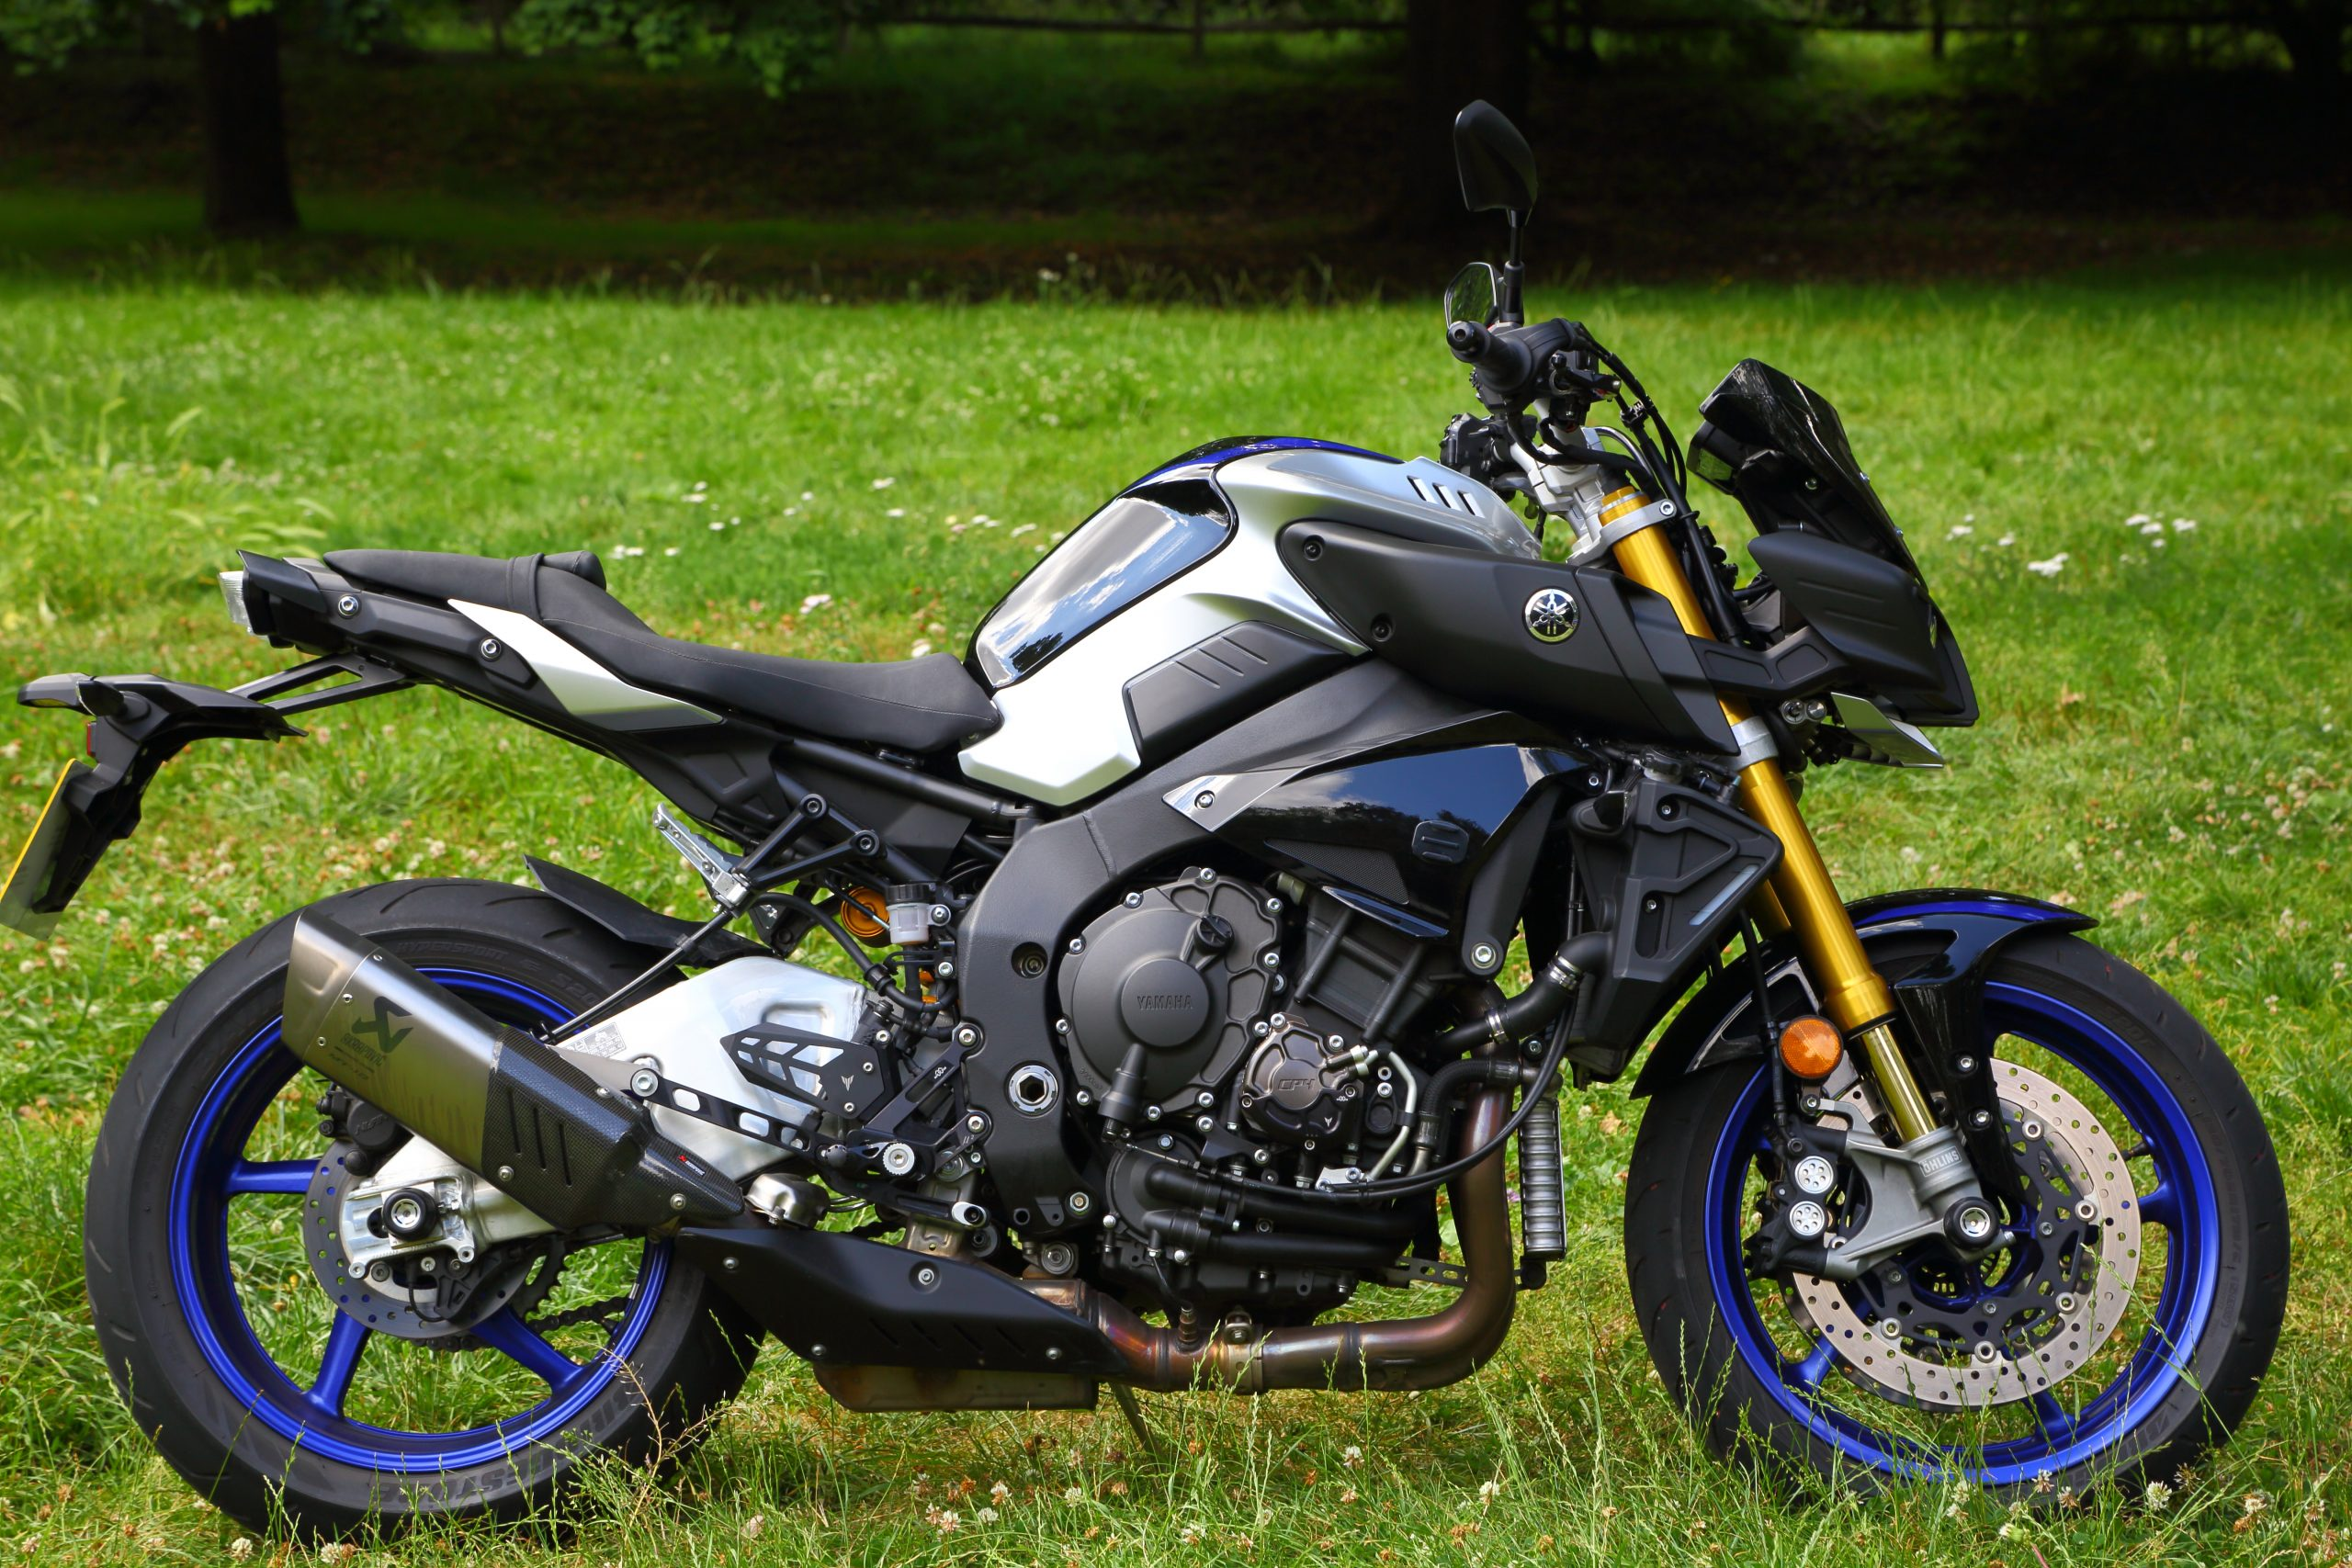 Motorbike types, streetfighter, Yamaha MT-10 SP